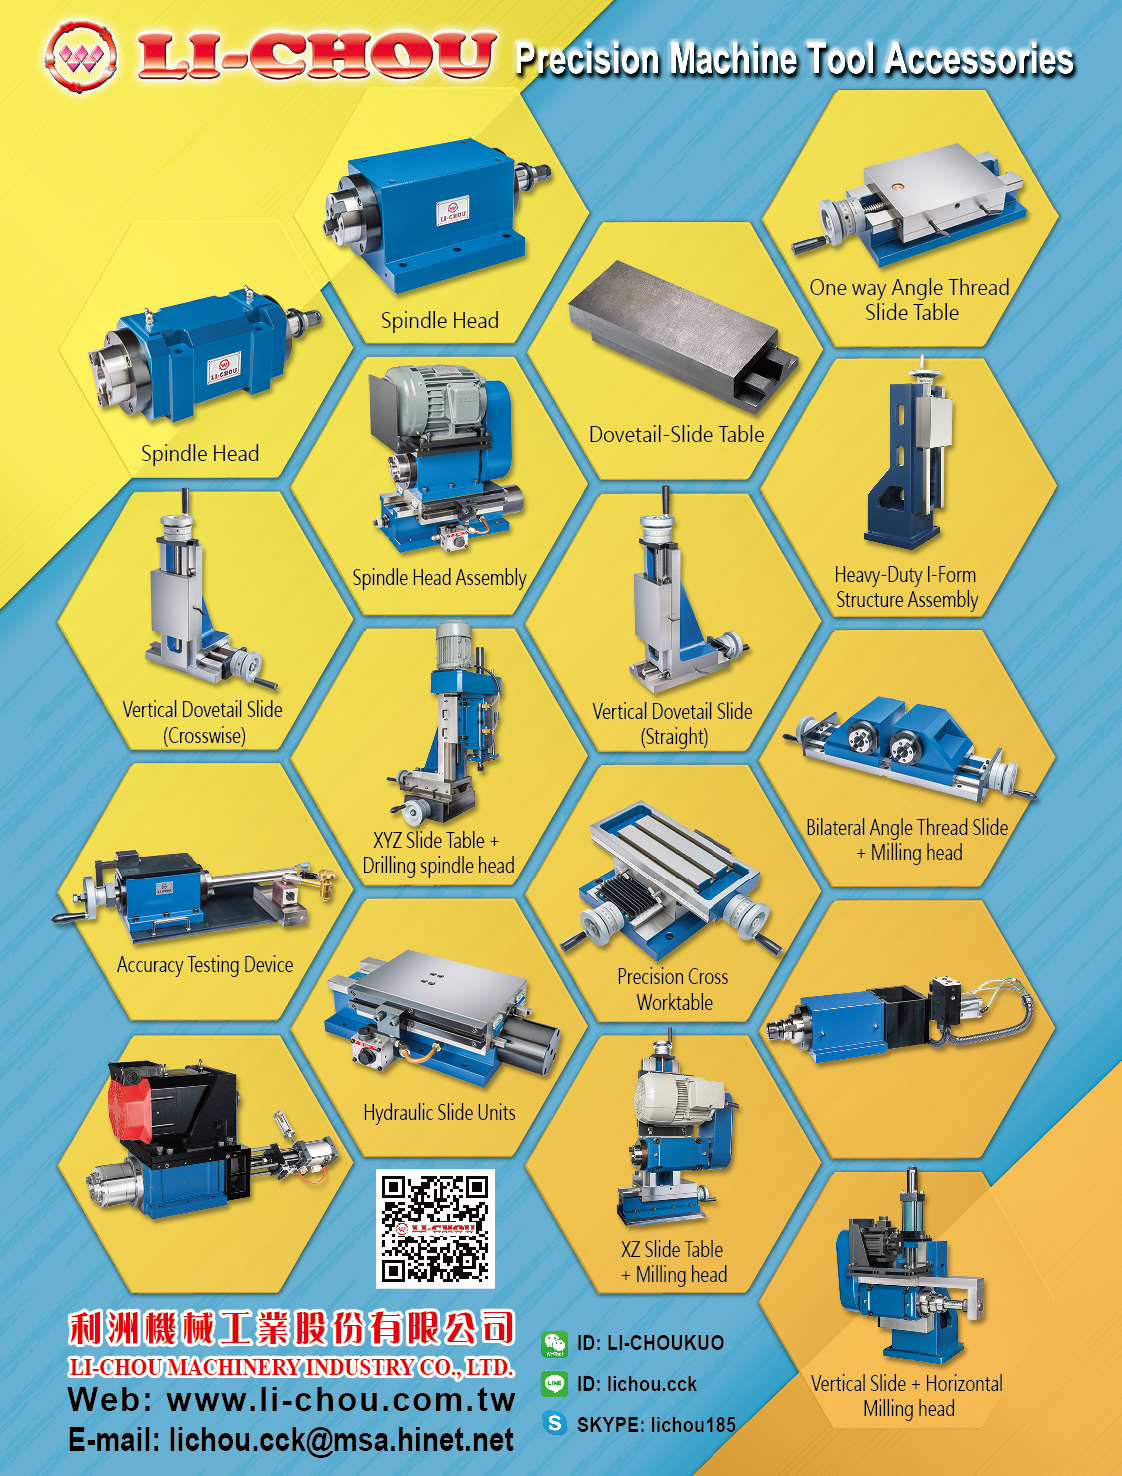 LI-CHOU MACHINERY INDUSTRY CO., LTD.